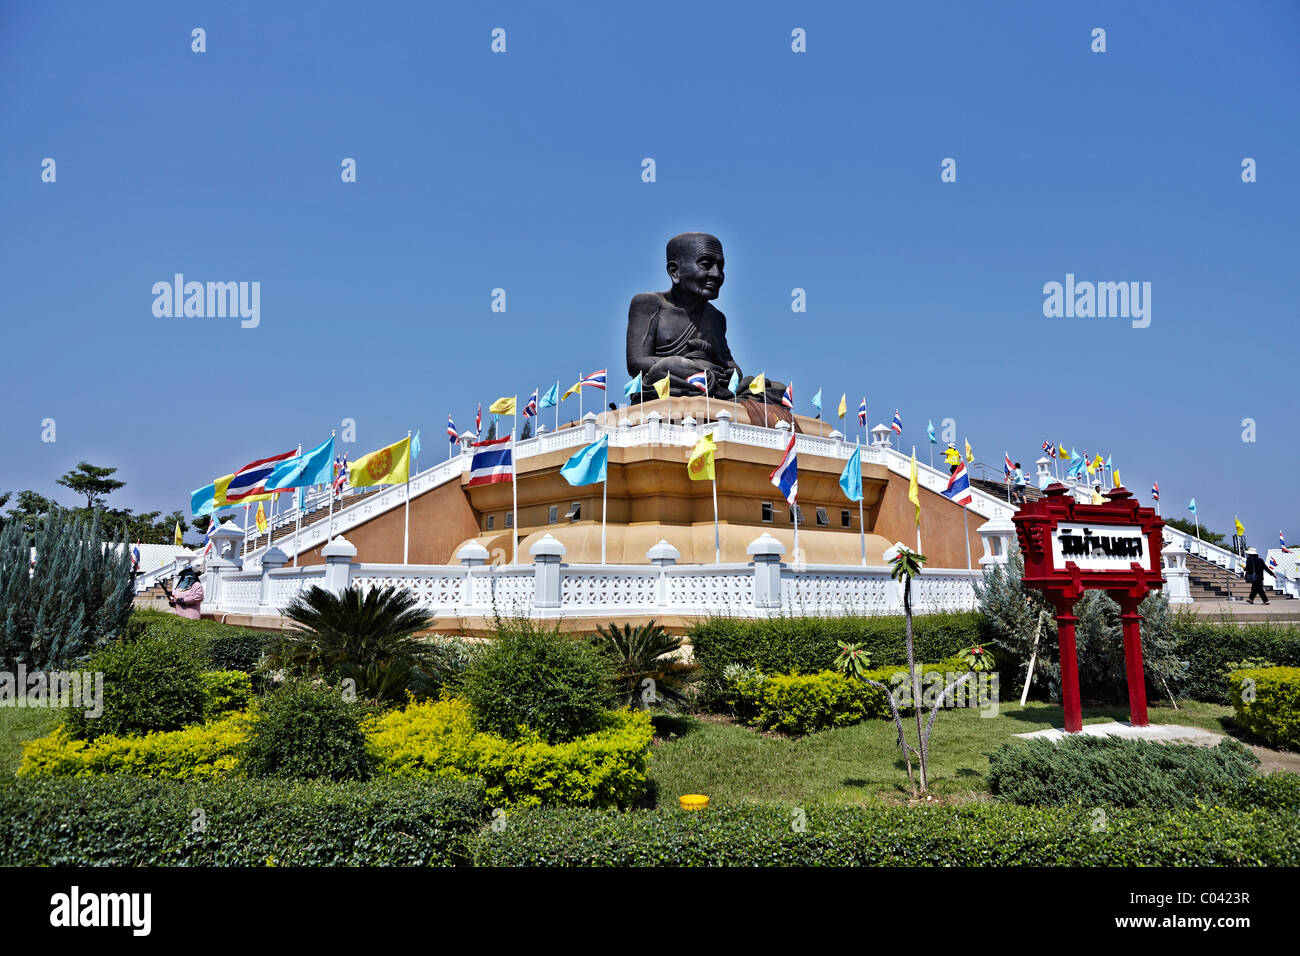 The giant statue of revered monk Luang Pu Thuat at Wat Huay Mongkol Hua Hin Thailand Asia measuring some 31.5 feet - Stock Image